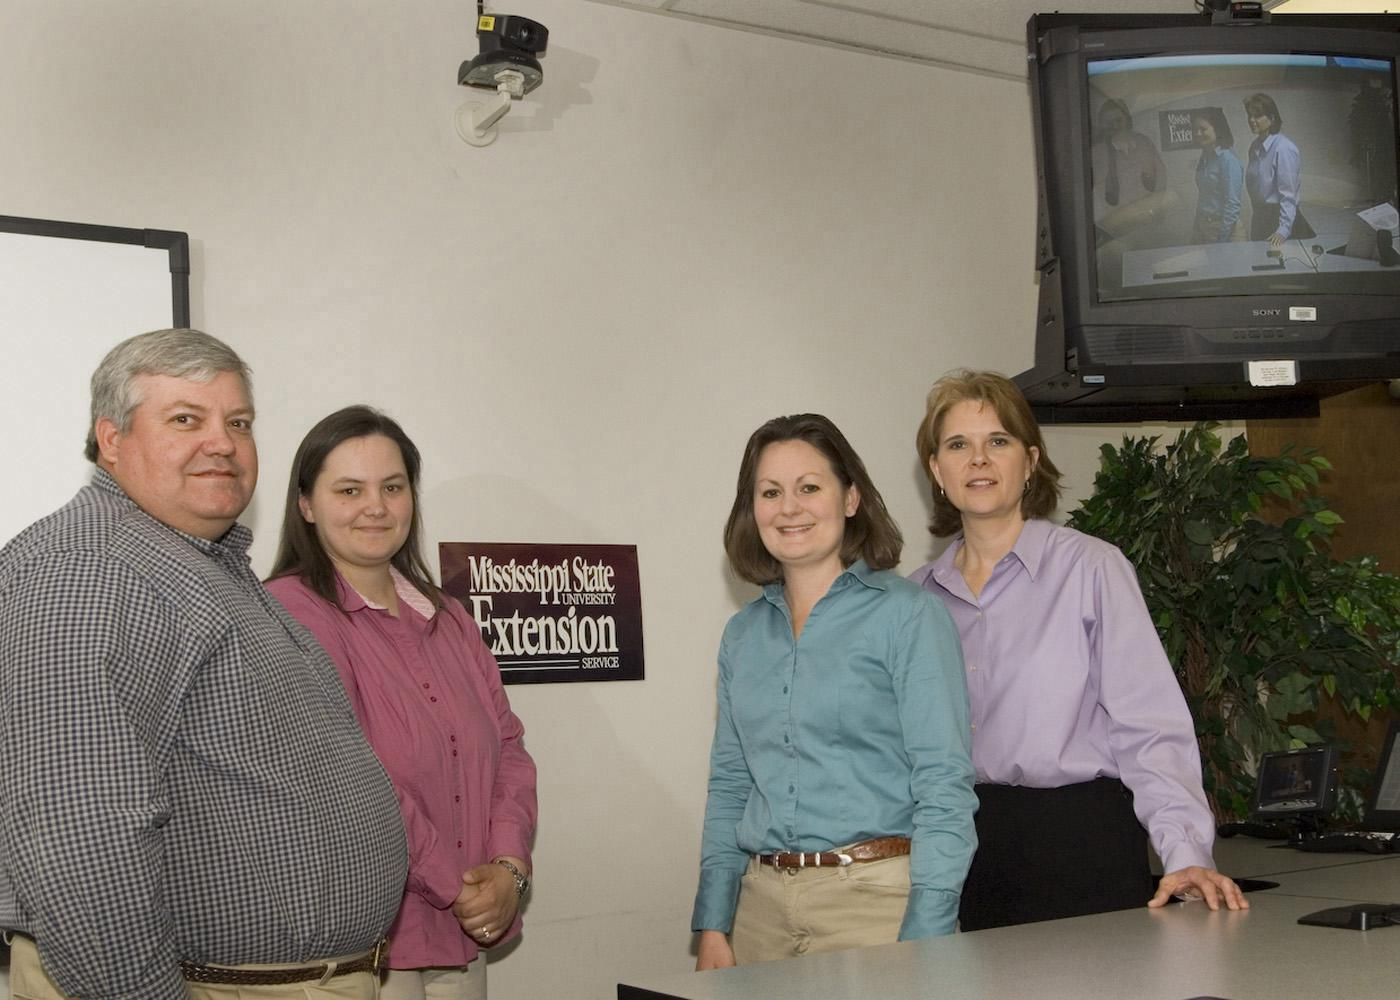 The MSU Extension Service distance education program team members include (from left) Steve Hankins, Susan Fulgham, Jane Parish and Susan Seal. (Photo by Marco Nicovich) See larger view.